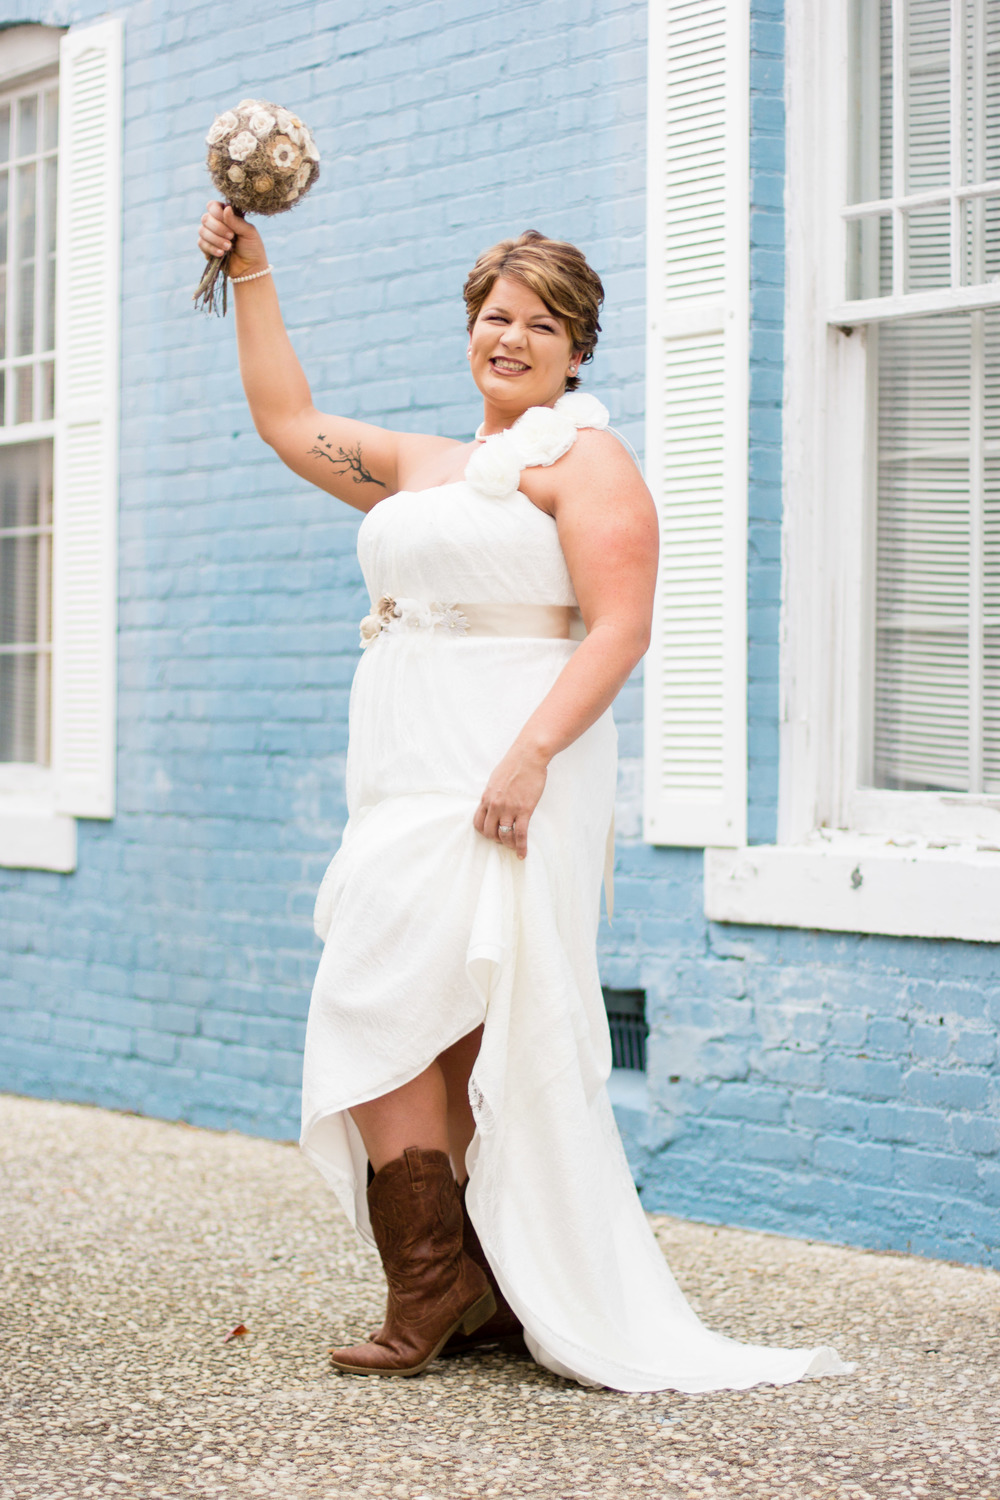 Bridal Portraits for Karen — Bryant Devon | Greenville North ...